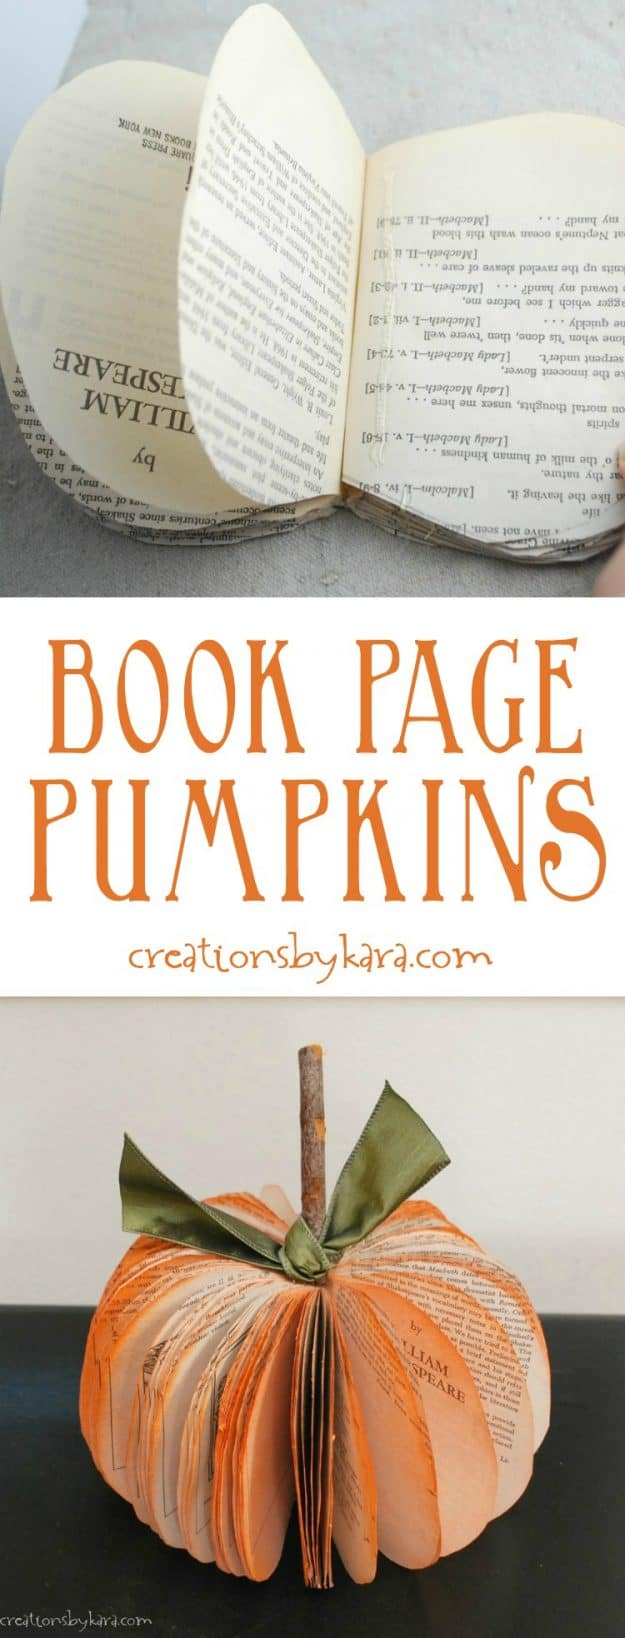 How To Make A Decorative Book Cover ~ Book page pumpkin tutorial